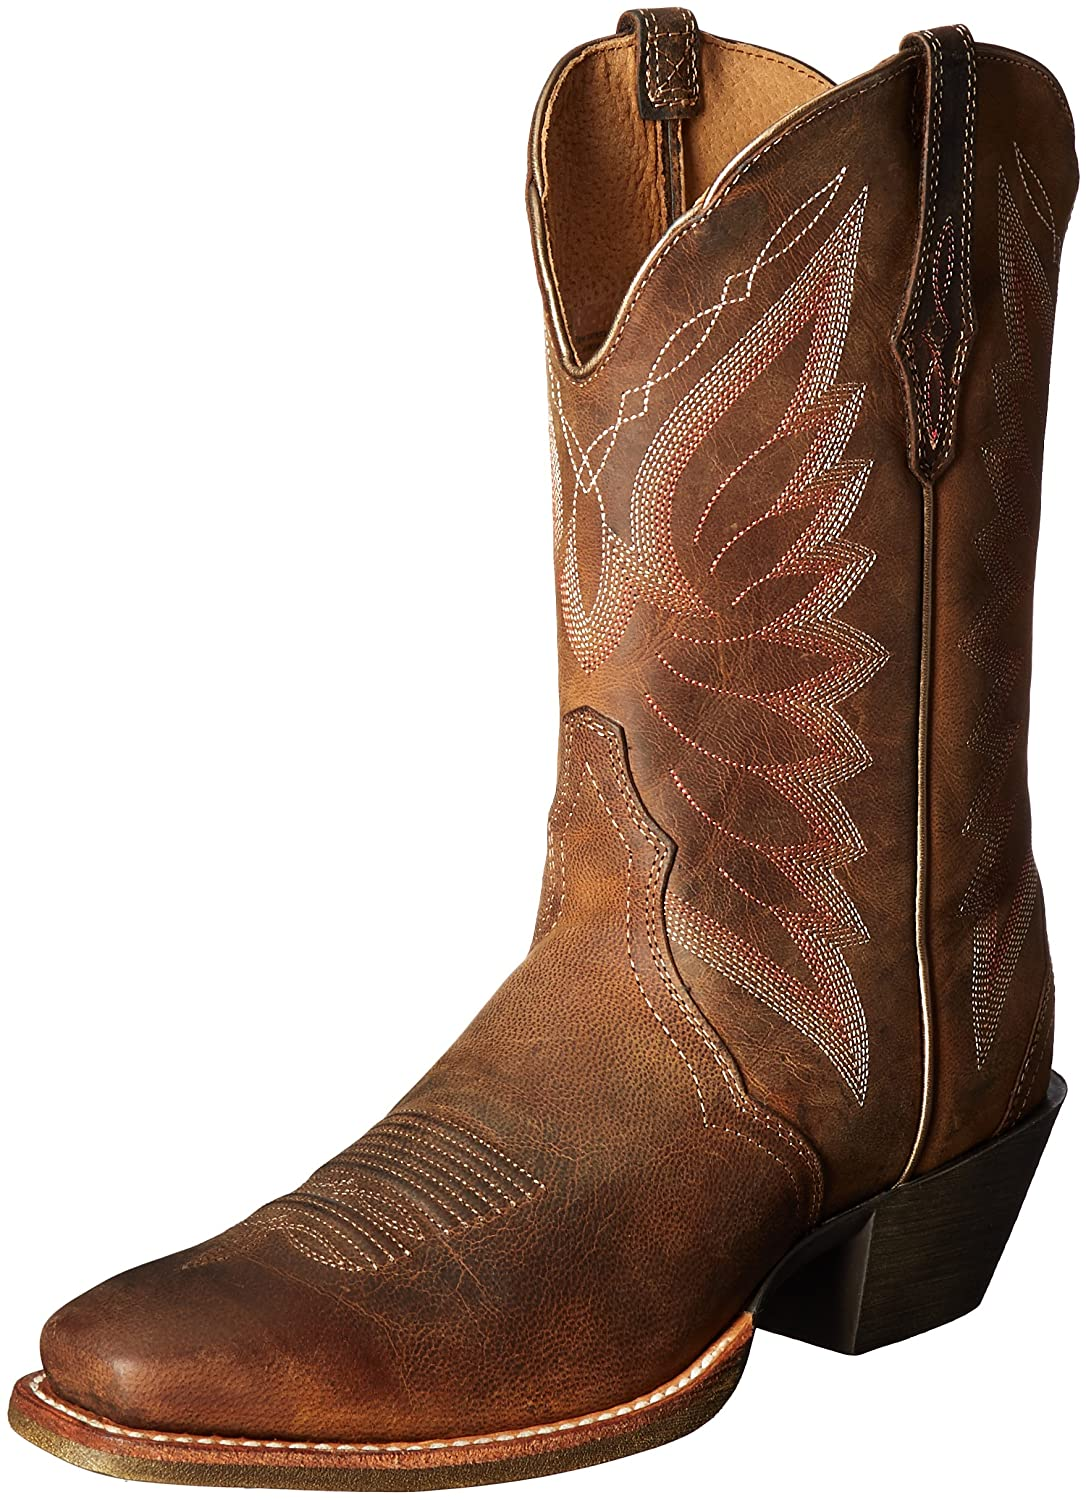 Ariat Women's Autry Western Cowboy Boot B01BPW6WS0 7.5 B(M) US|Woodsmoke